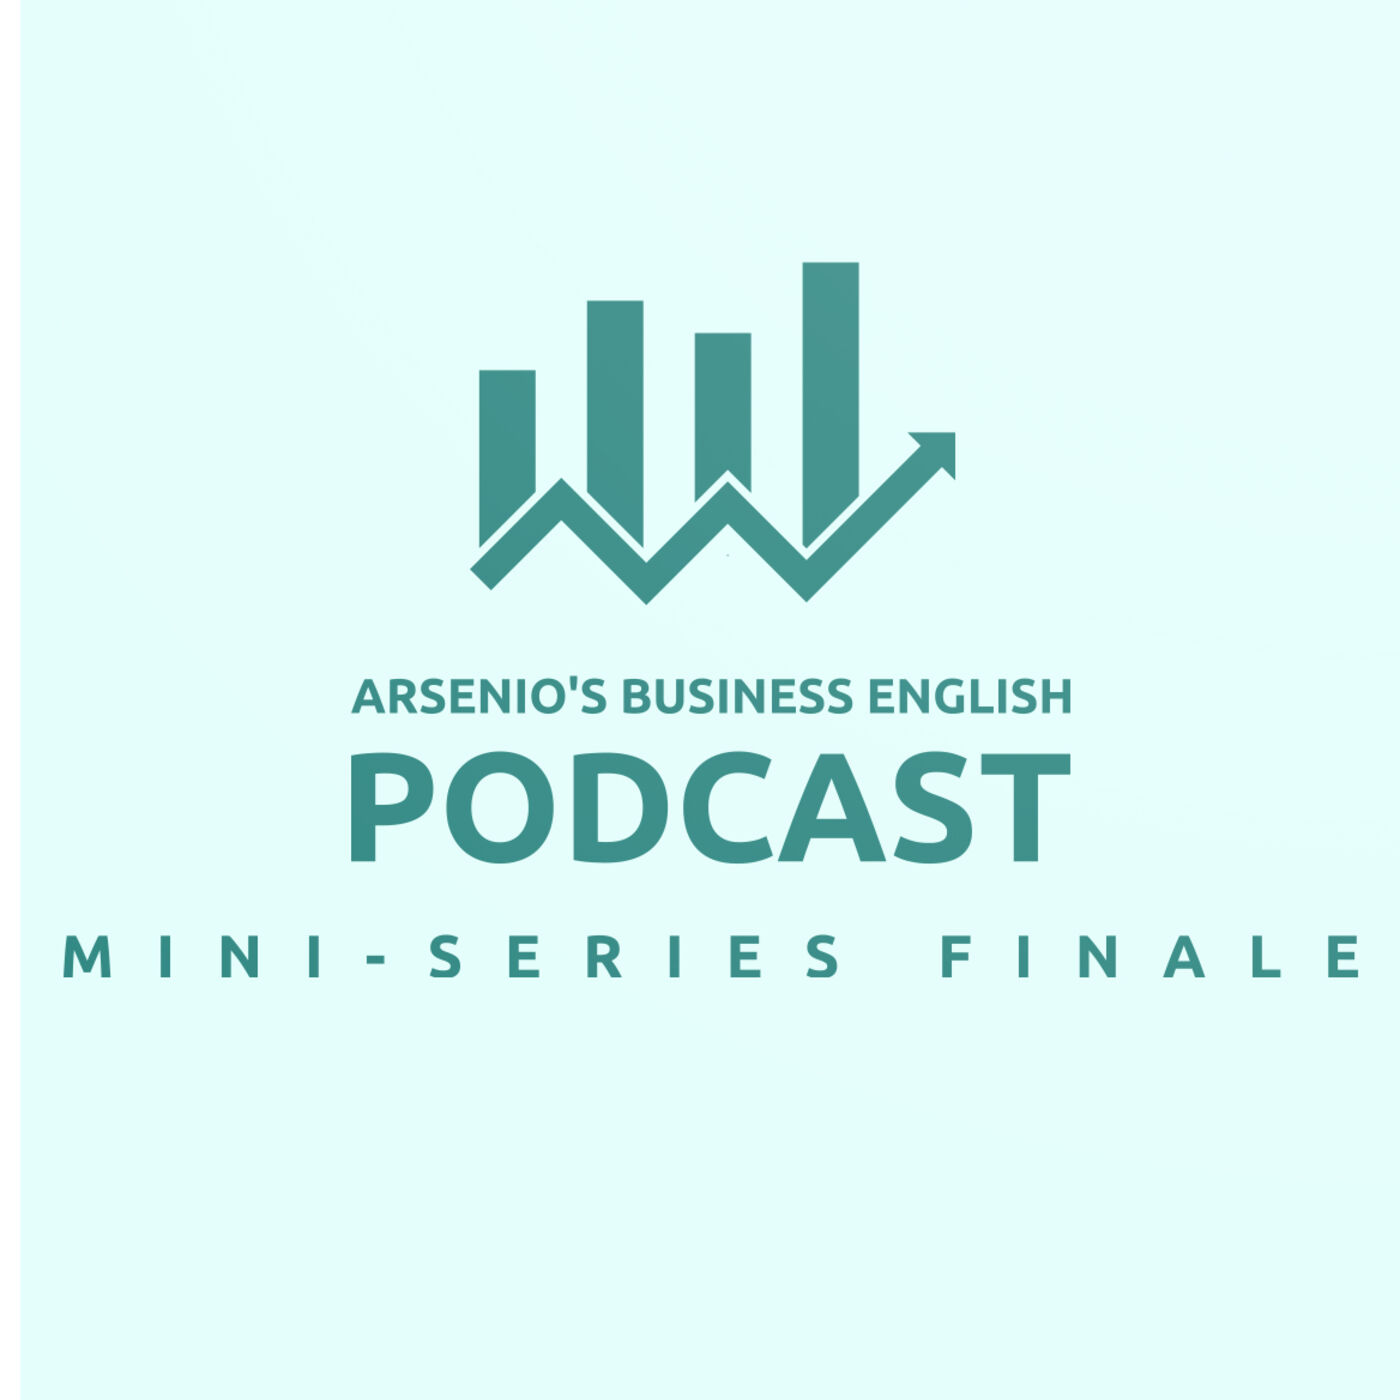 Arsenio's Business English Podcast | Season 6 | Sales | Mini-series Finale